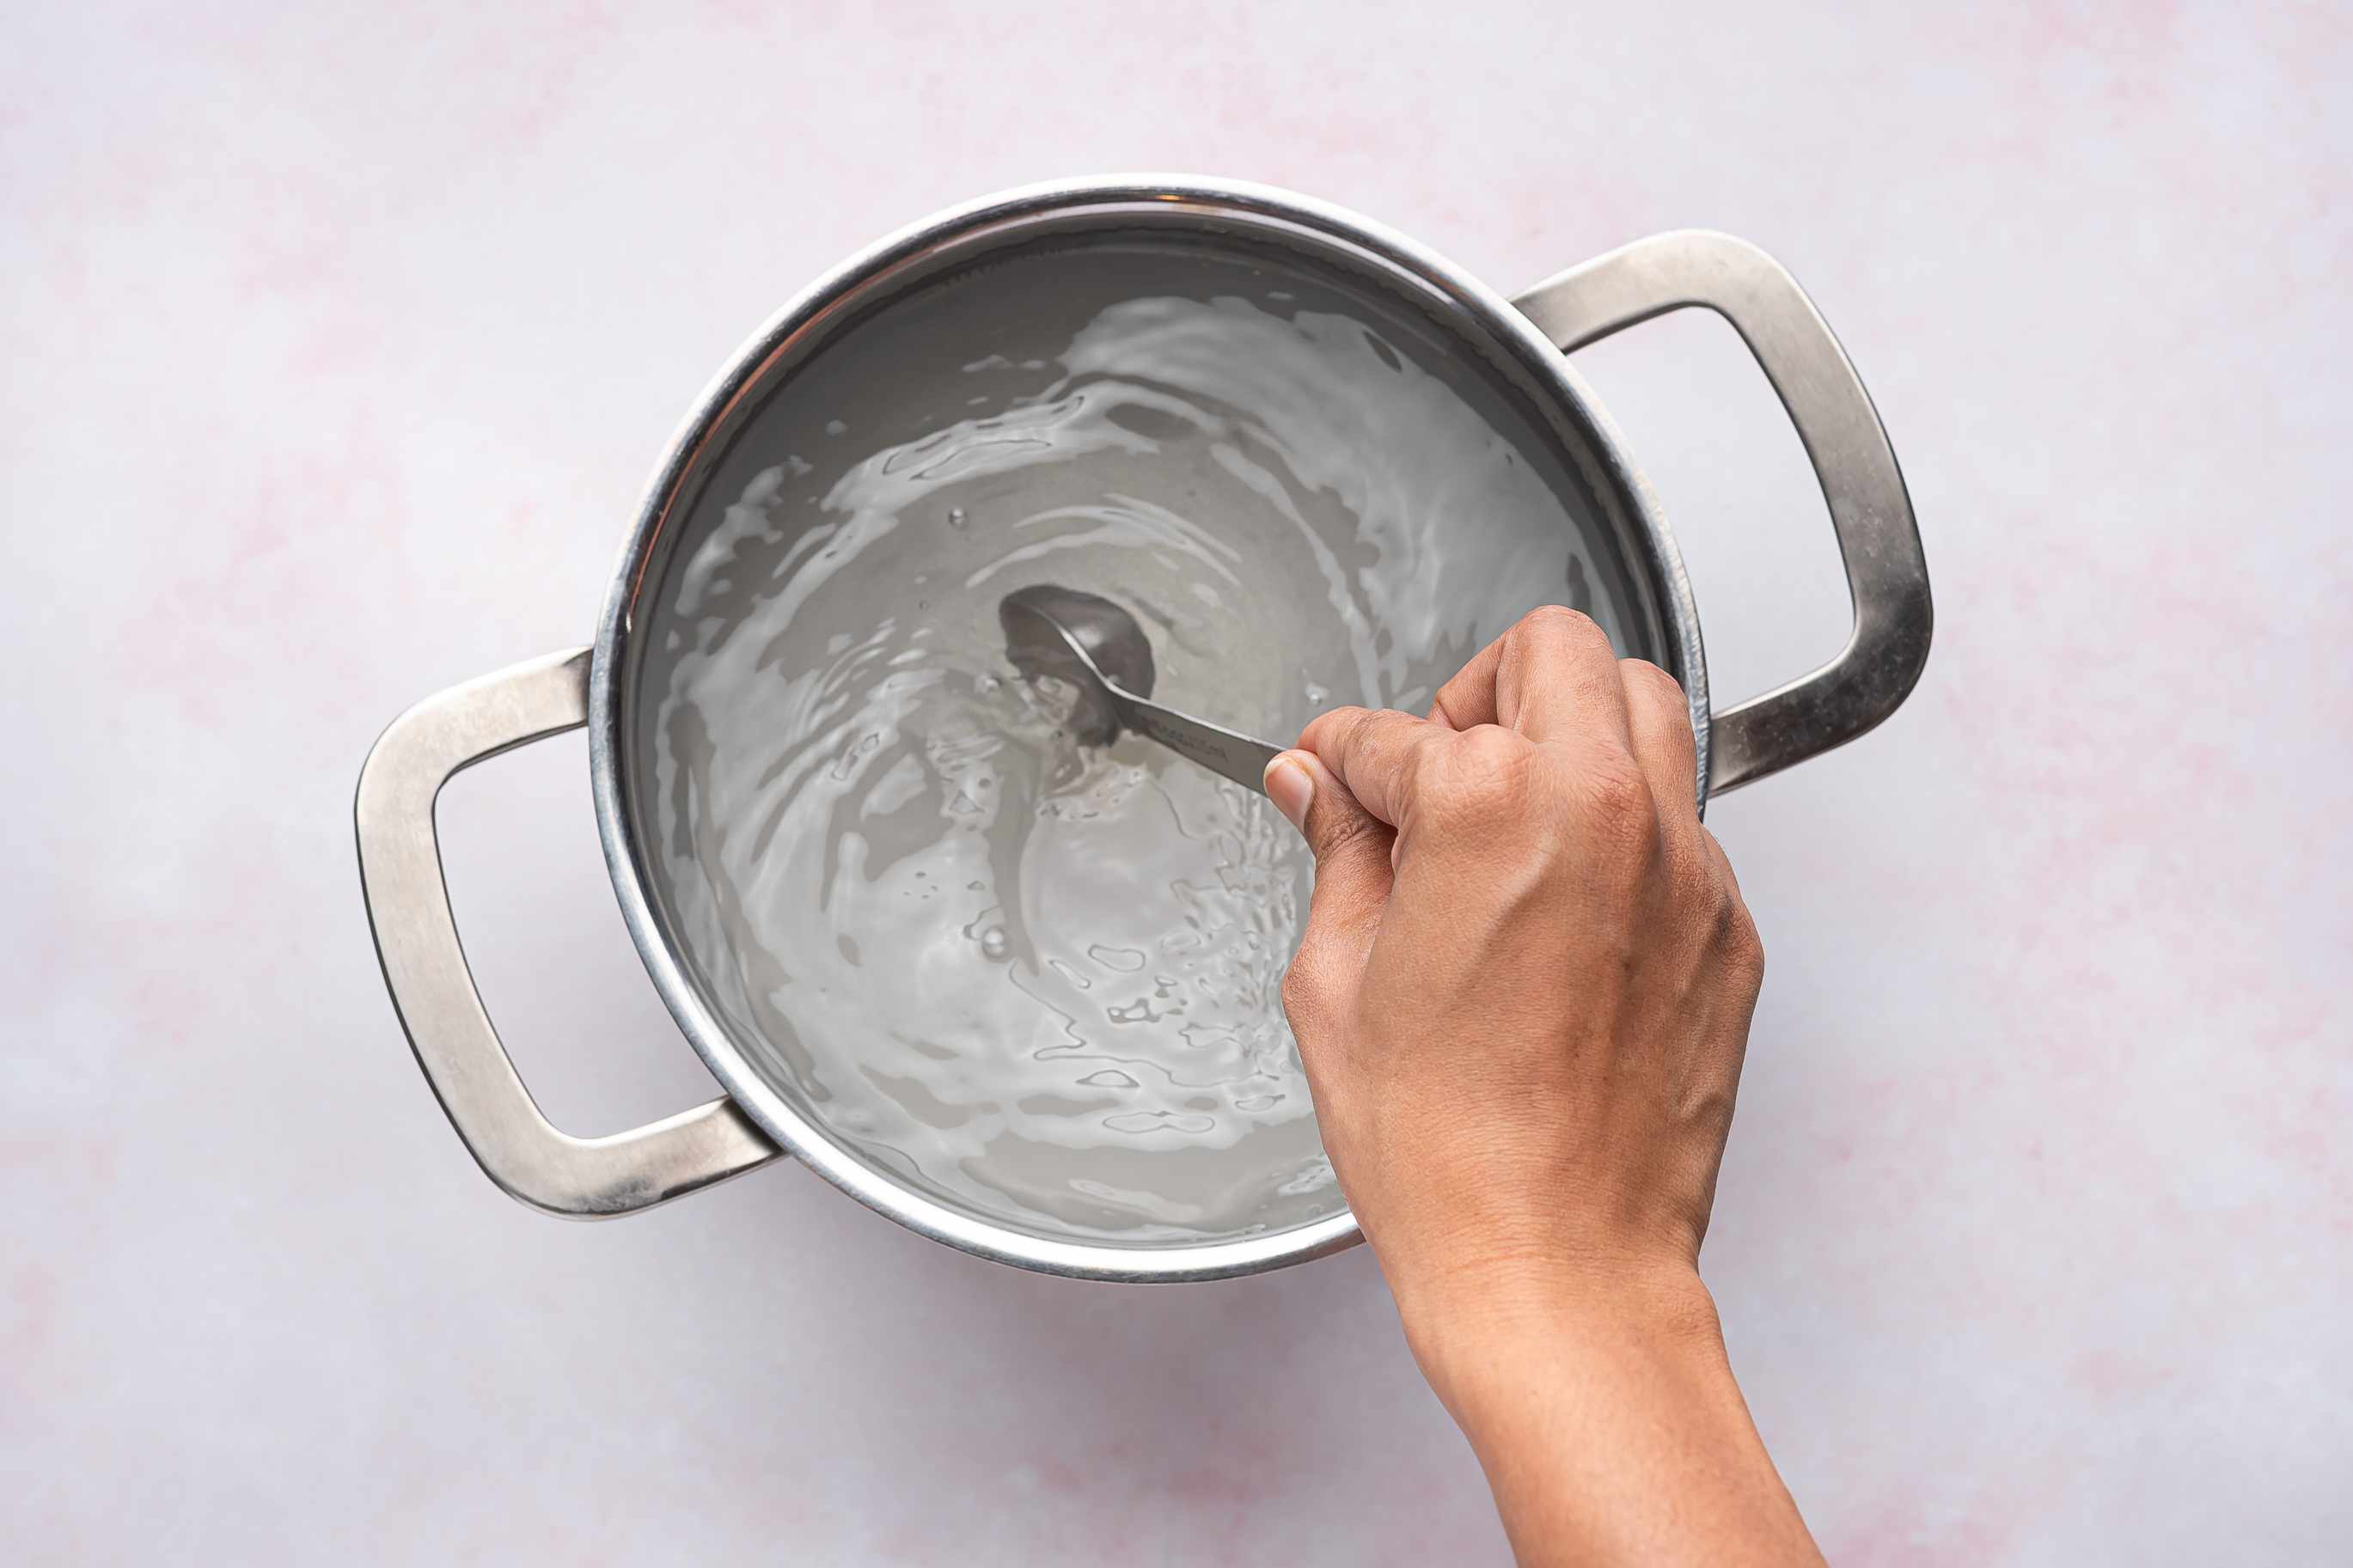 salt, sugar and water in a pot